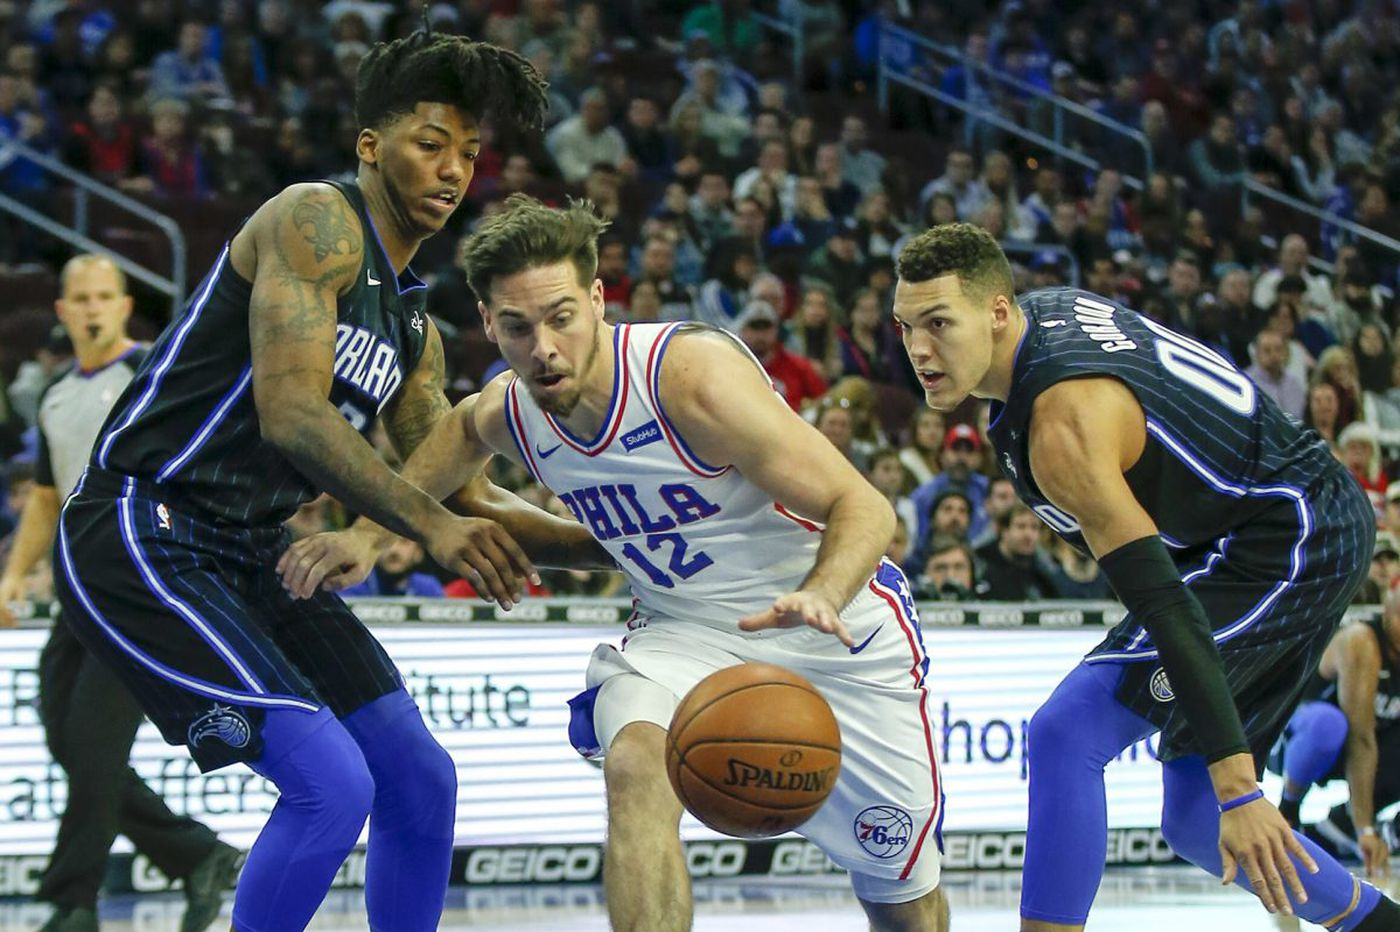 Sixers-Magic observations, 'best' and 'worst' awards: T.J. McConnell, Arron Afflalo, and Nik Vucevic's horrid second-half shooting